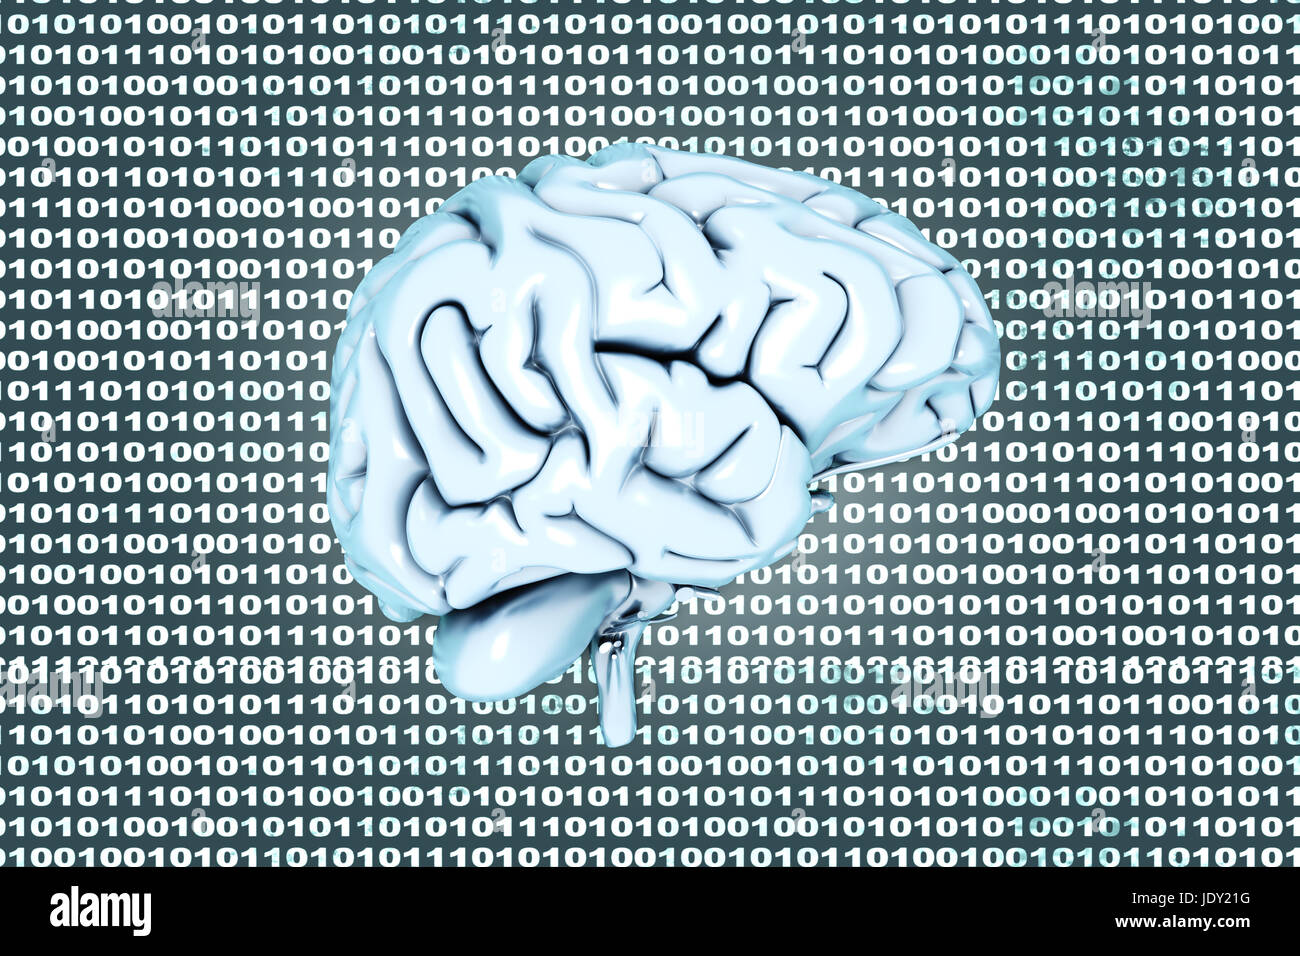 Artificial intelligence and coded brain. 3D rendered Illustration. Stock Photo